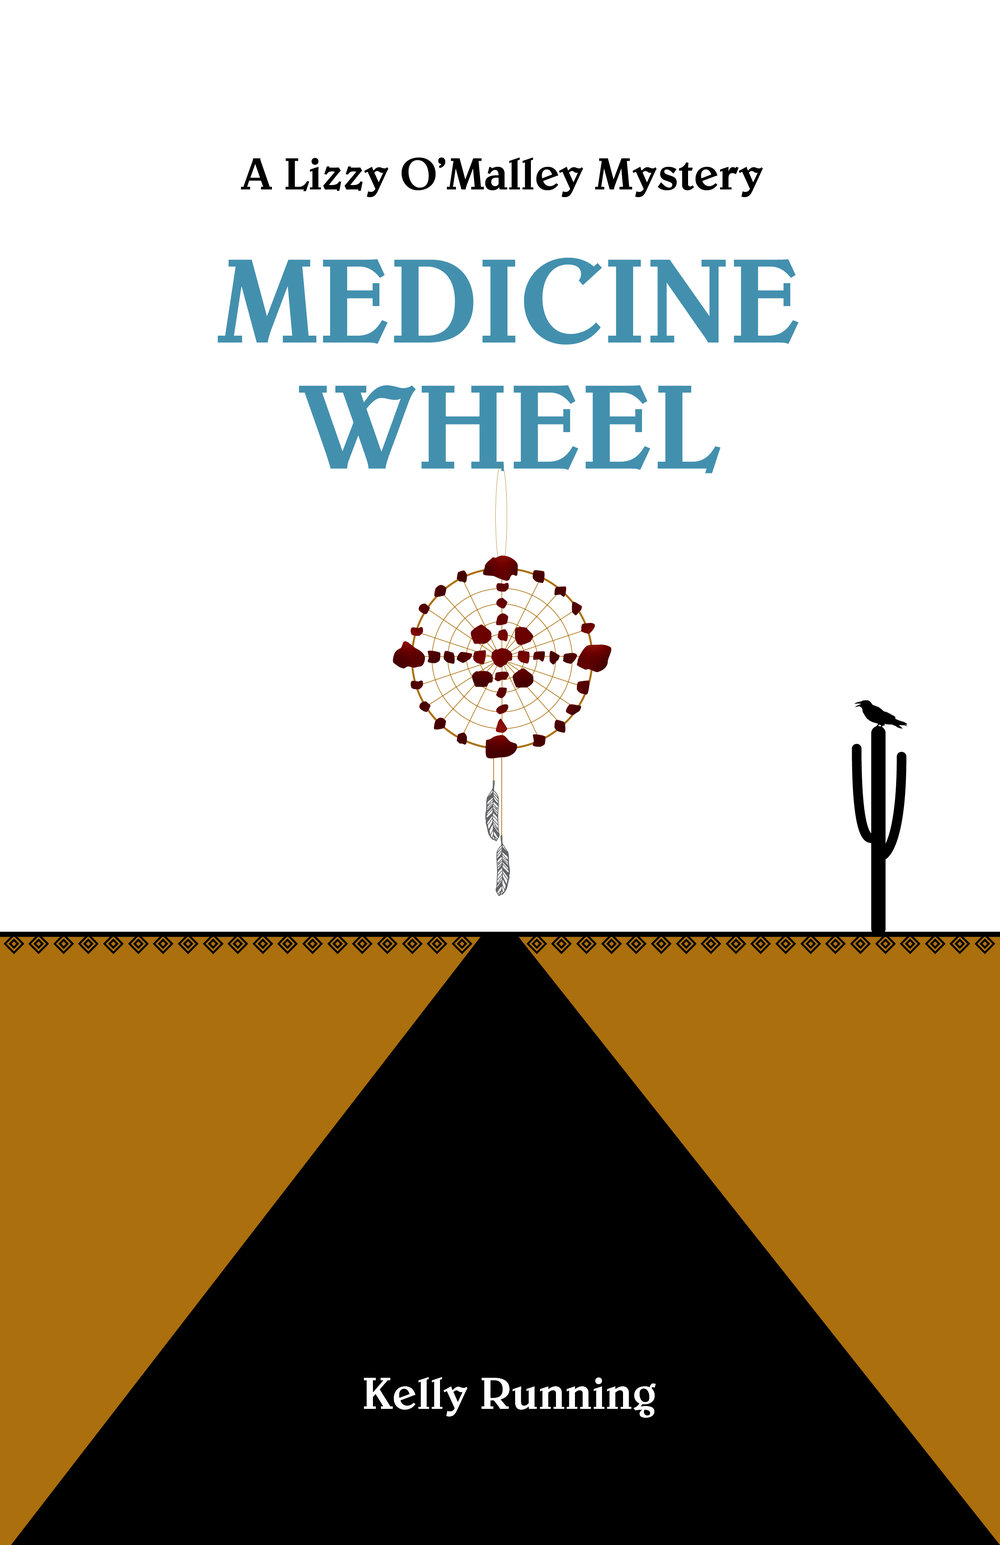 Medicine Wheel by Kelly Running (2016)